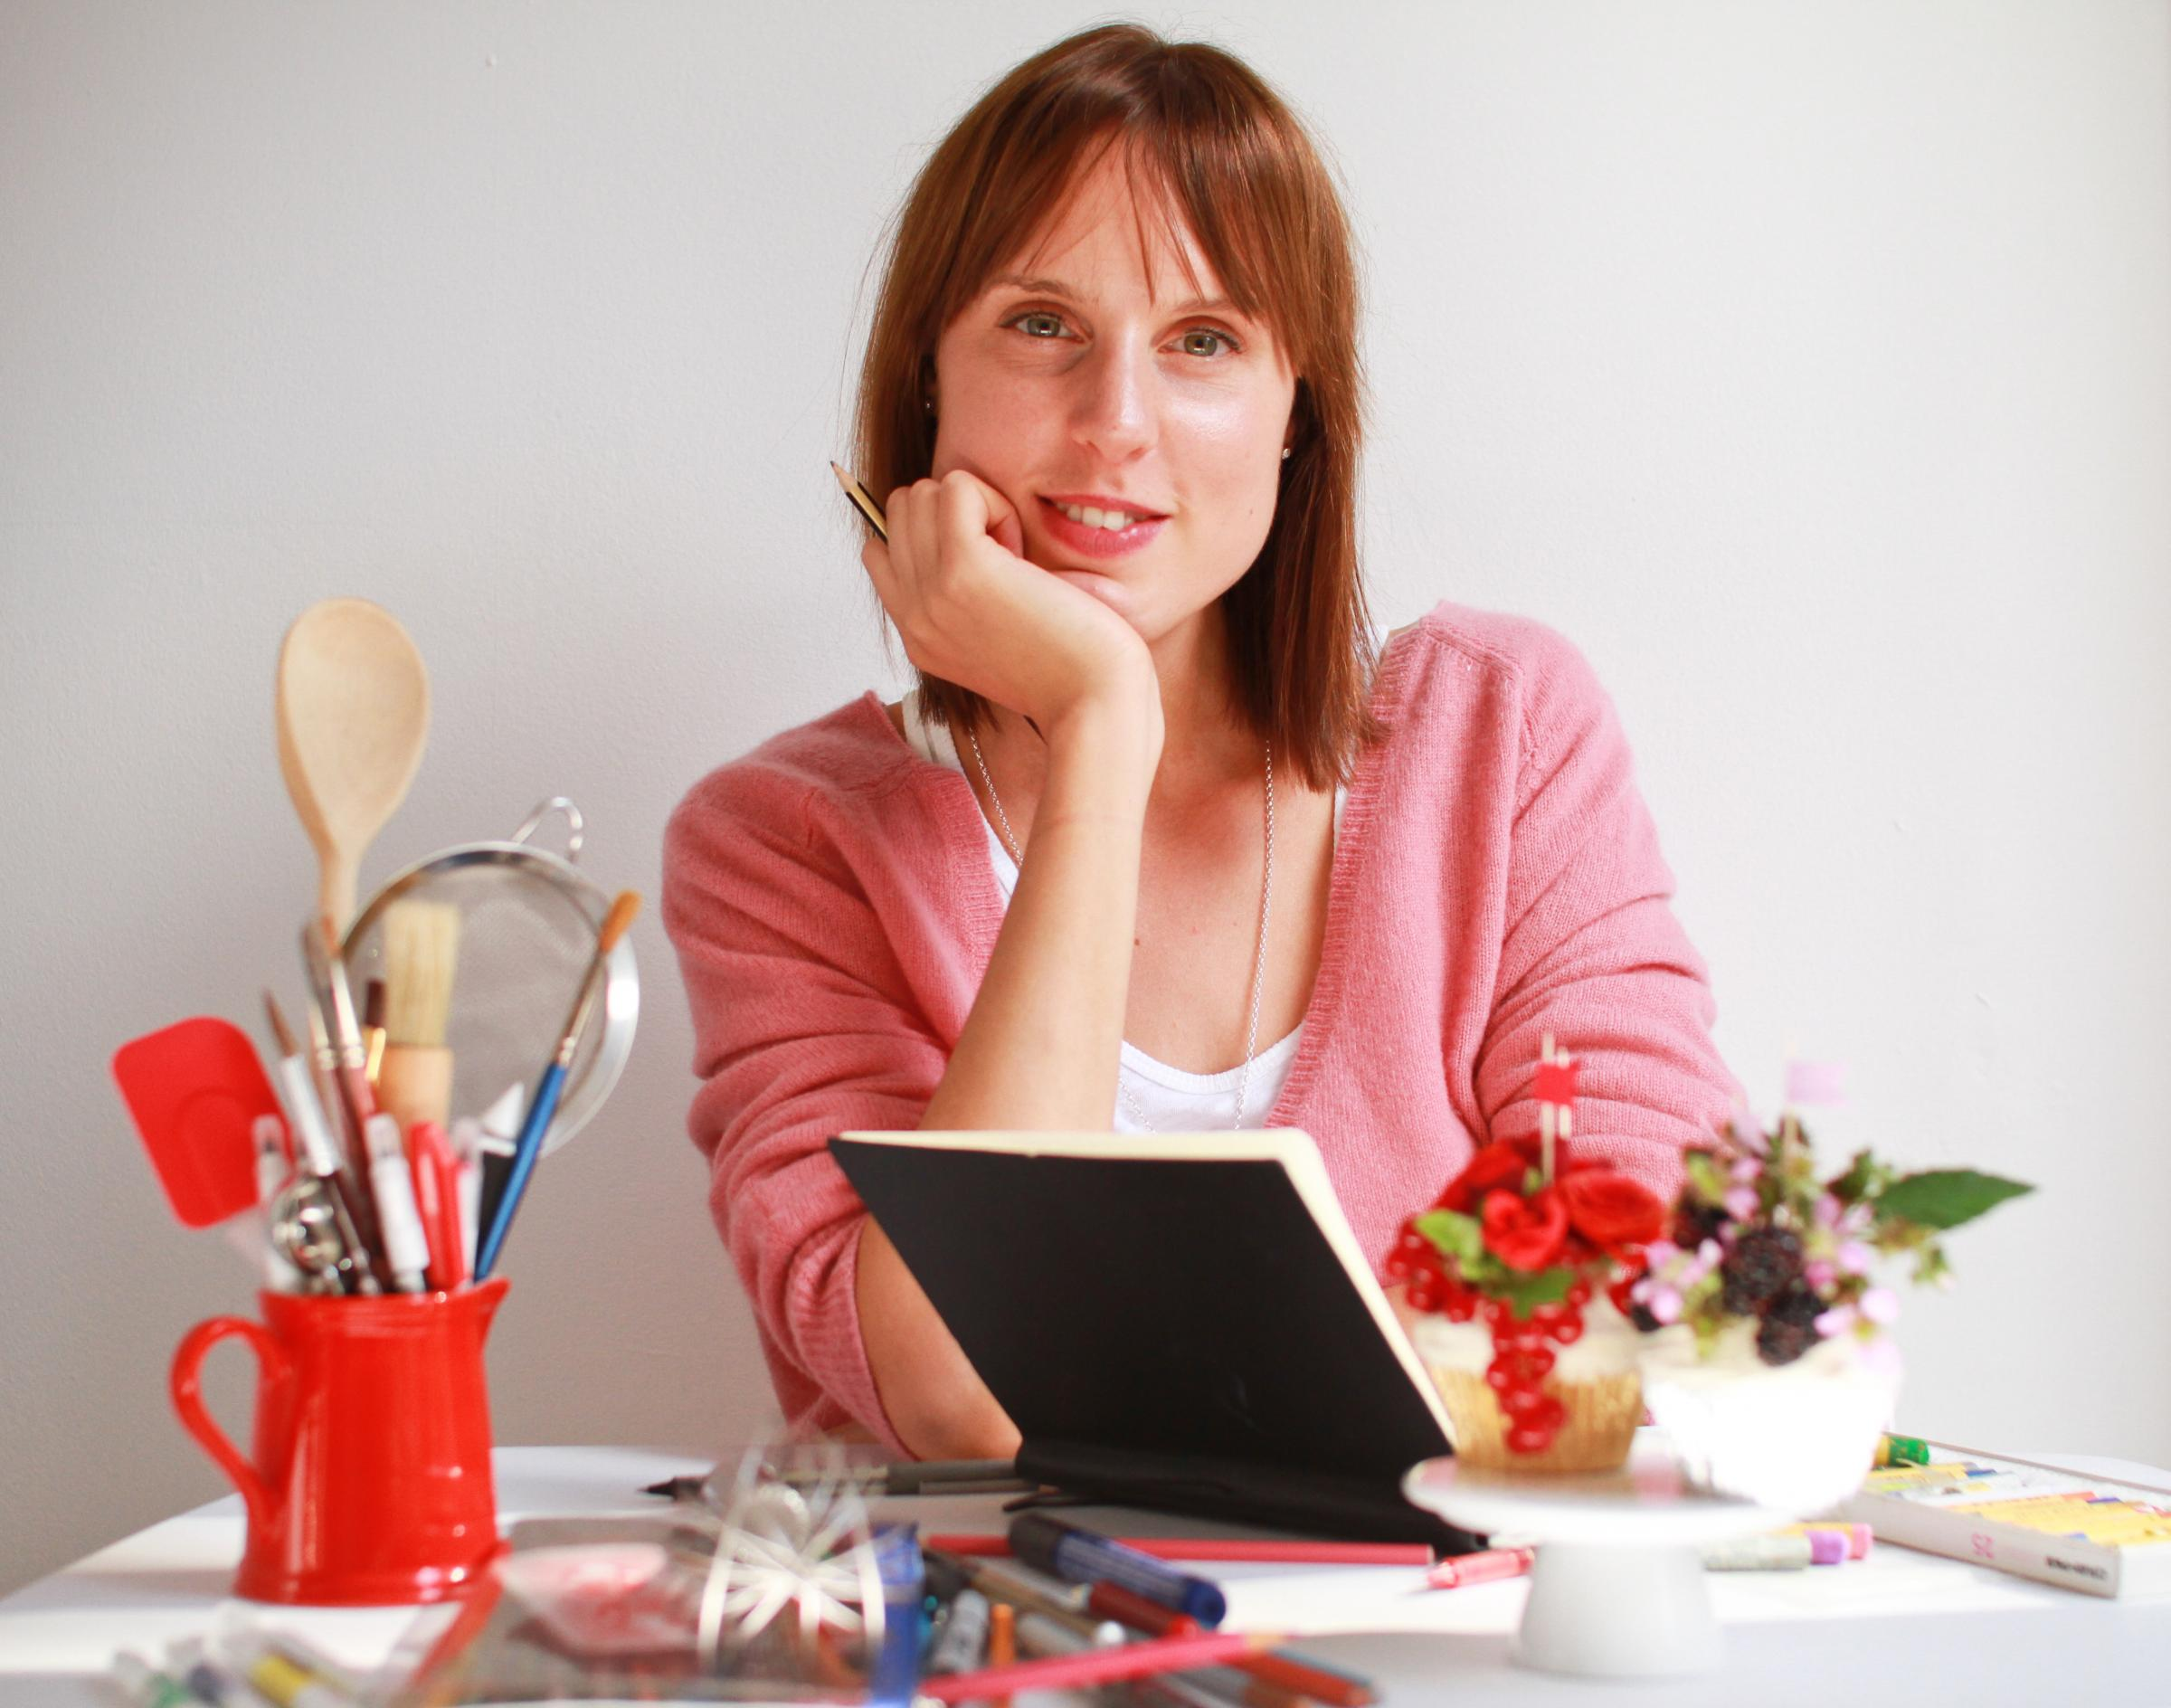 Great British Bake Off winner Frances Quinn, photo by Dave Smith